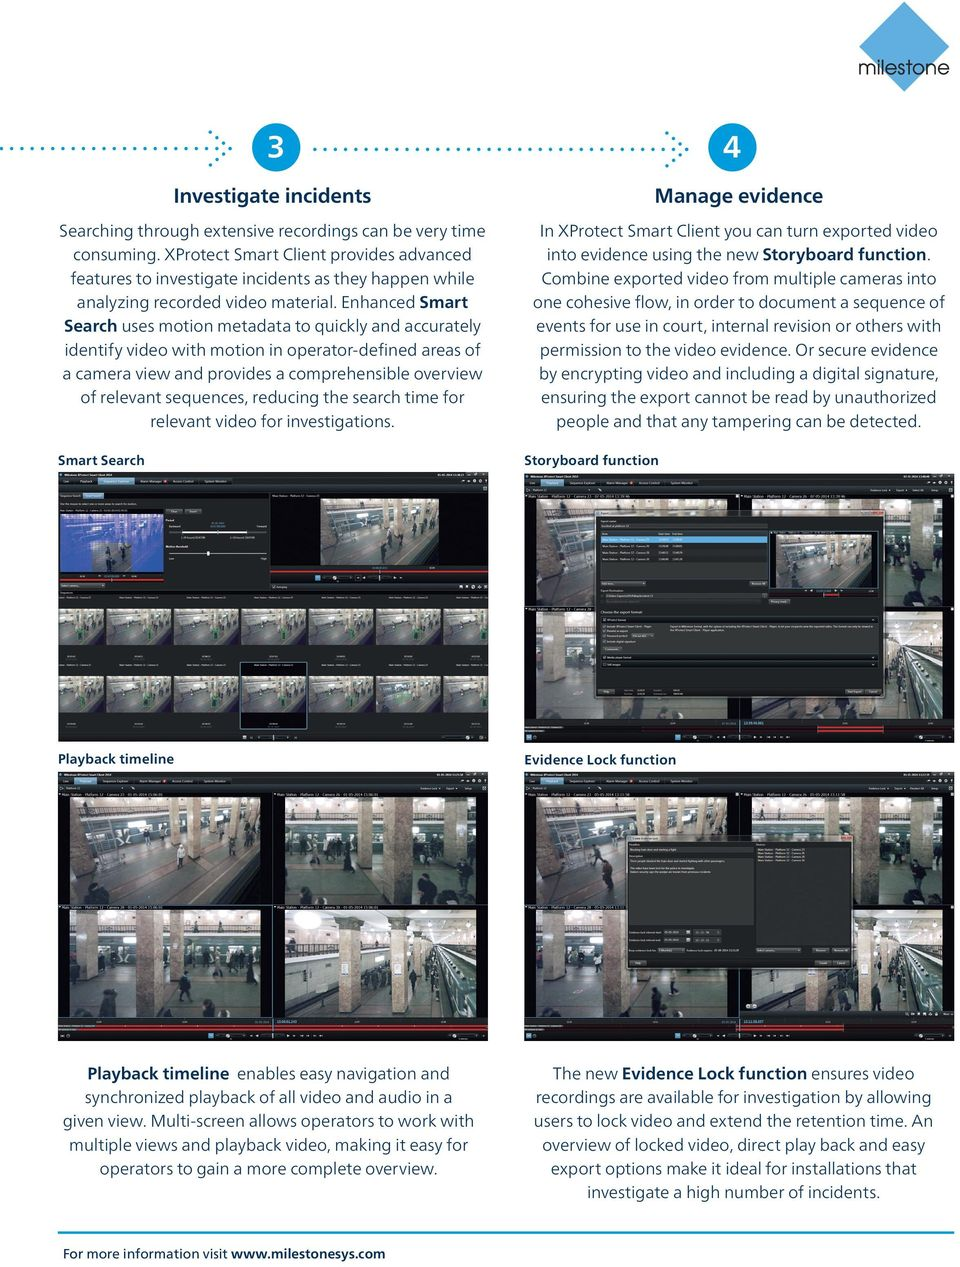 Enhanced Smart Search uses motion metadata to quickly and accurately identify video with motion in operator-defined areas of a camera view and provides a comprehensible overview of relevant